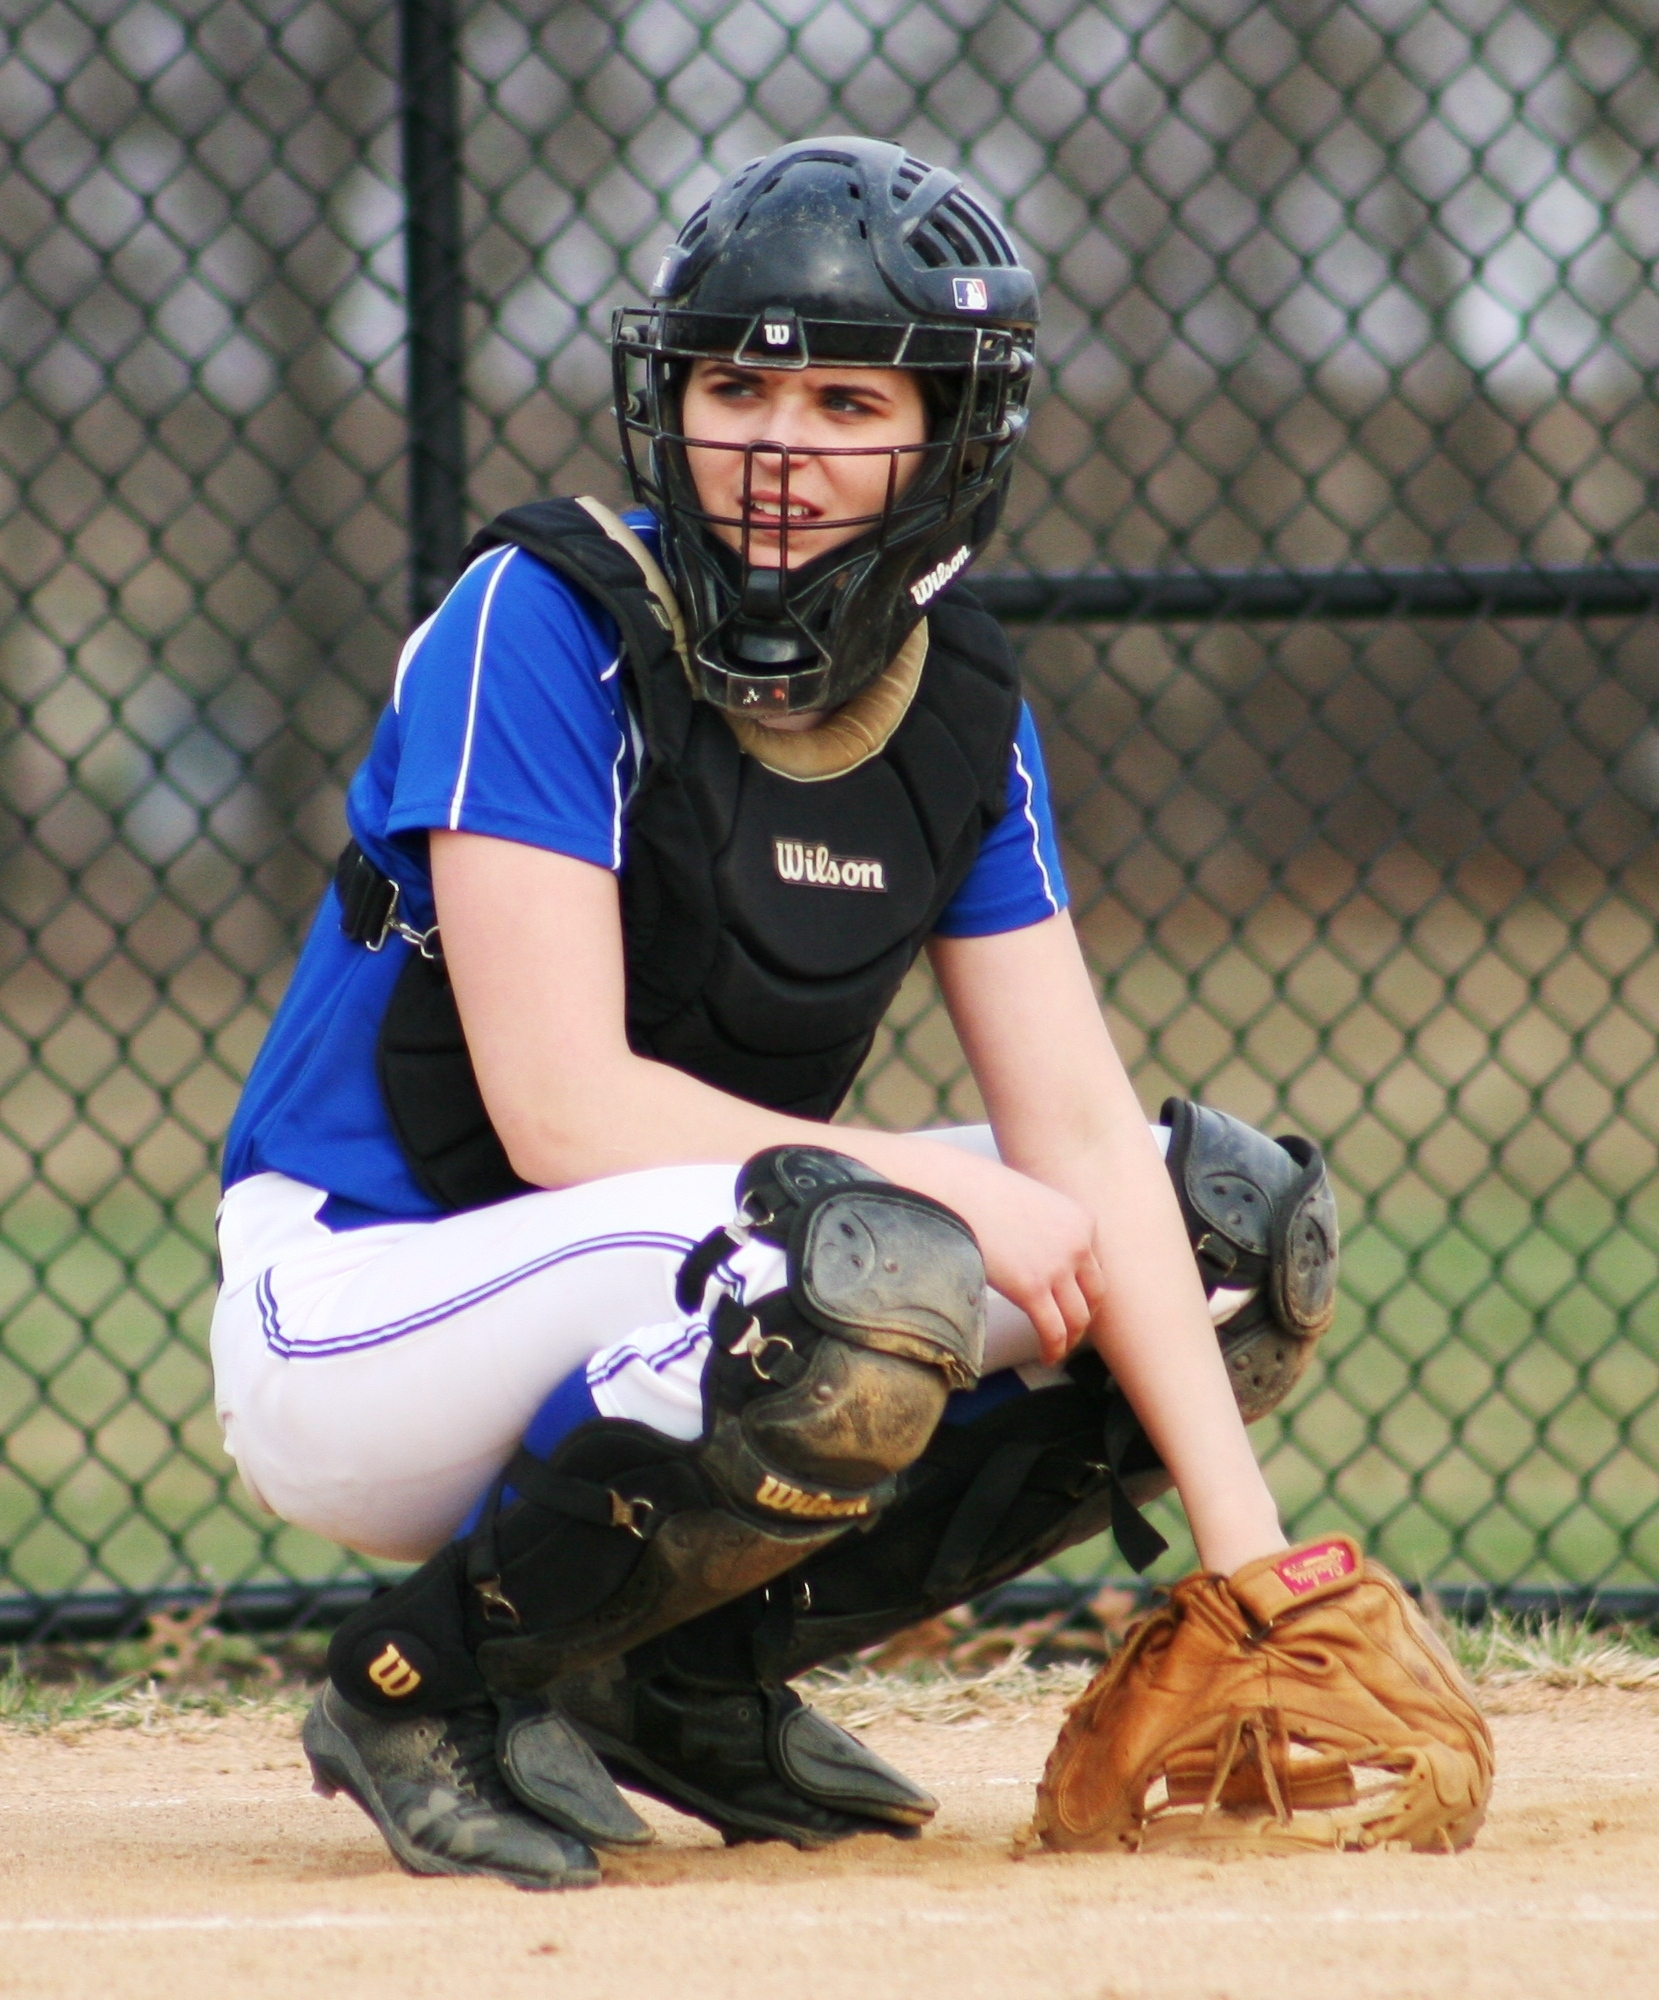 Northern Lebanon softball 046